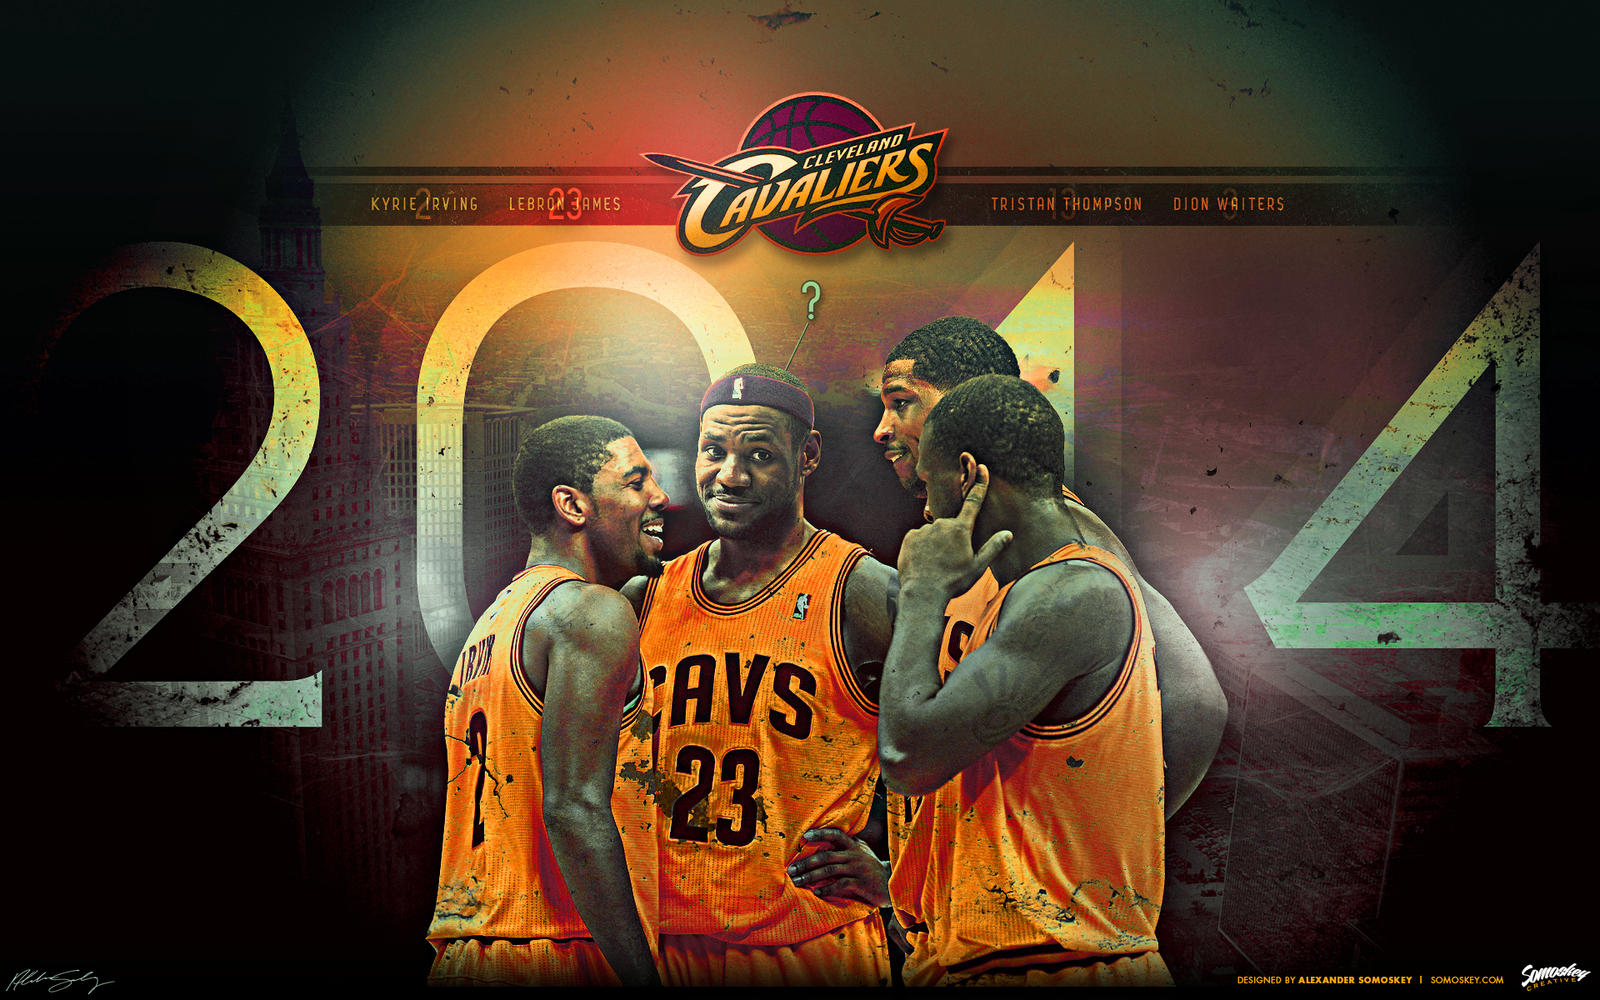 2014 lebron james by witnessgfx on deviantart 2014 lebron james by witnessgfx 2014 lebron james by witnessgfx voltagebd Choice Image